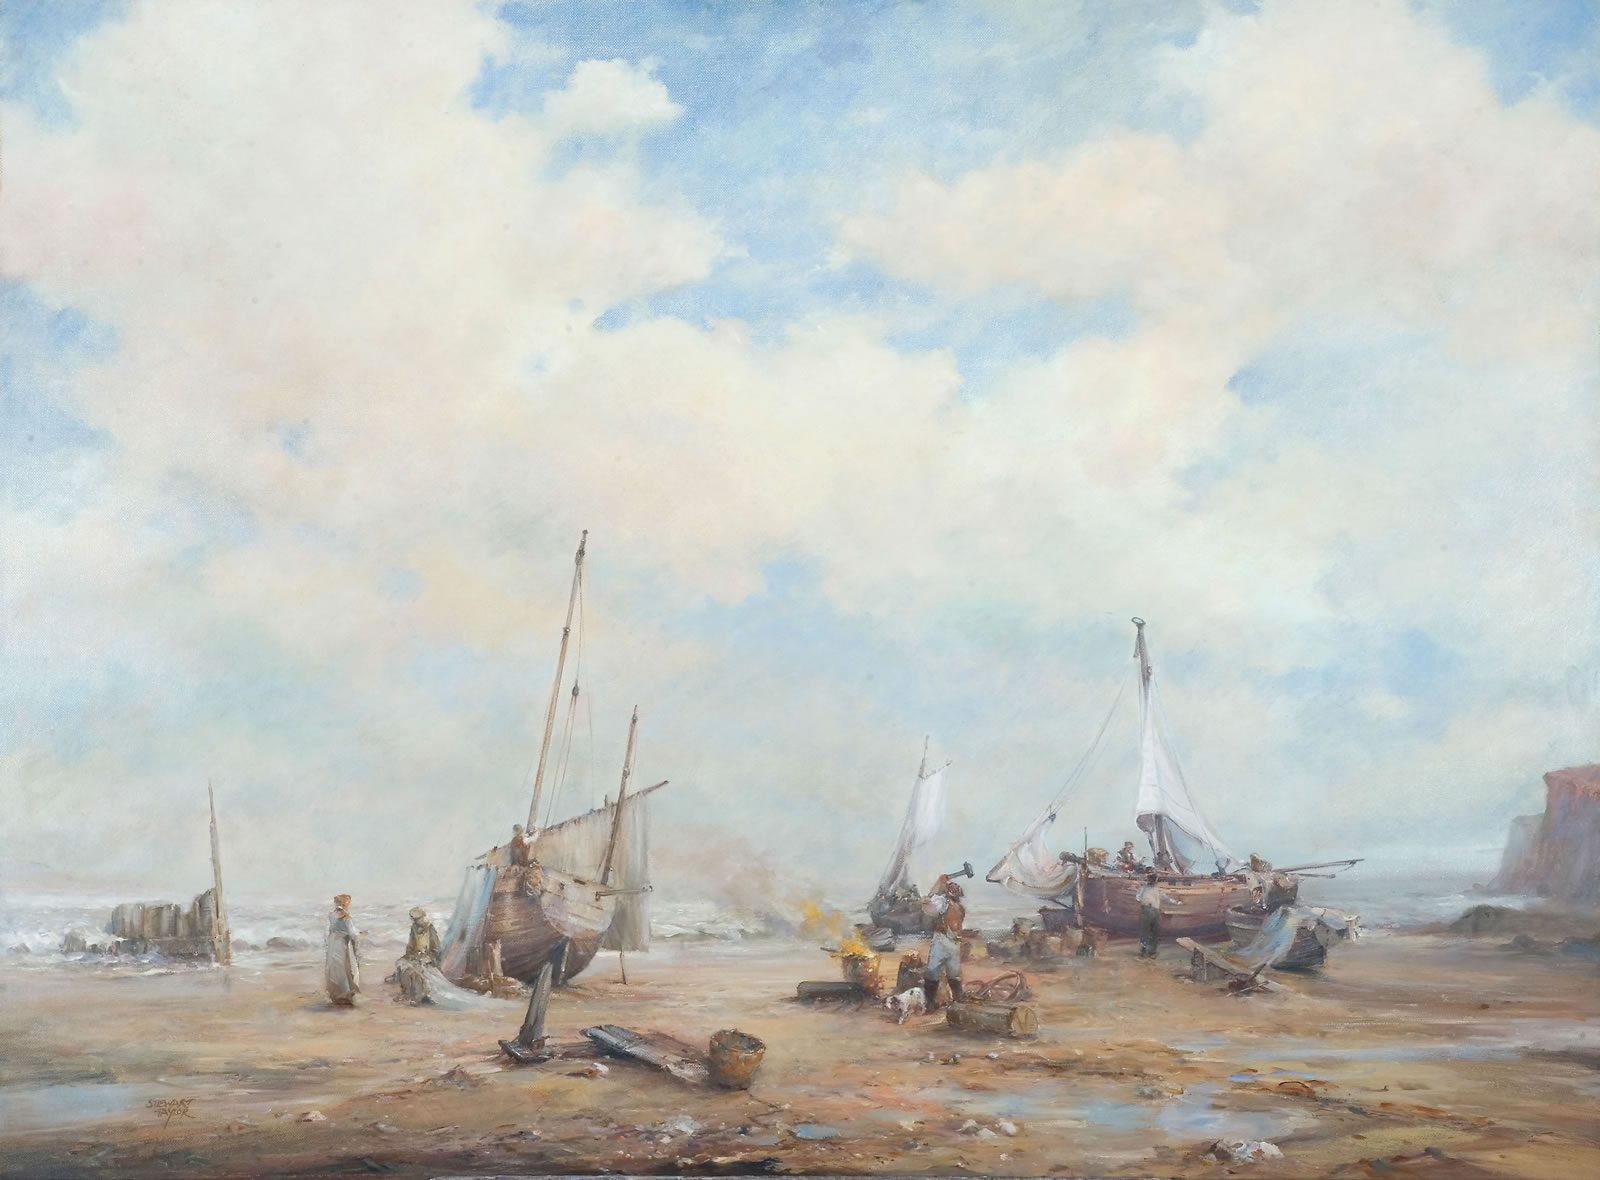 Oil painting of men at work repairing fishing boats